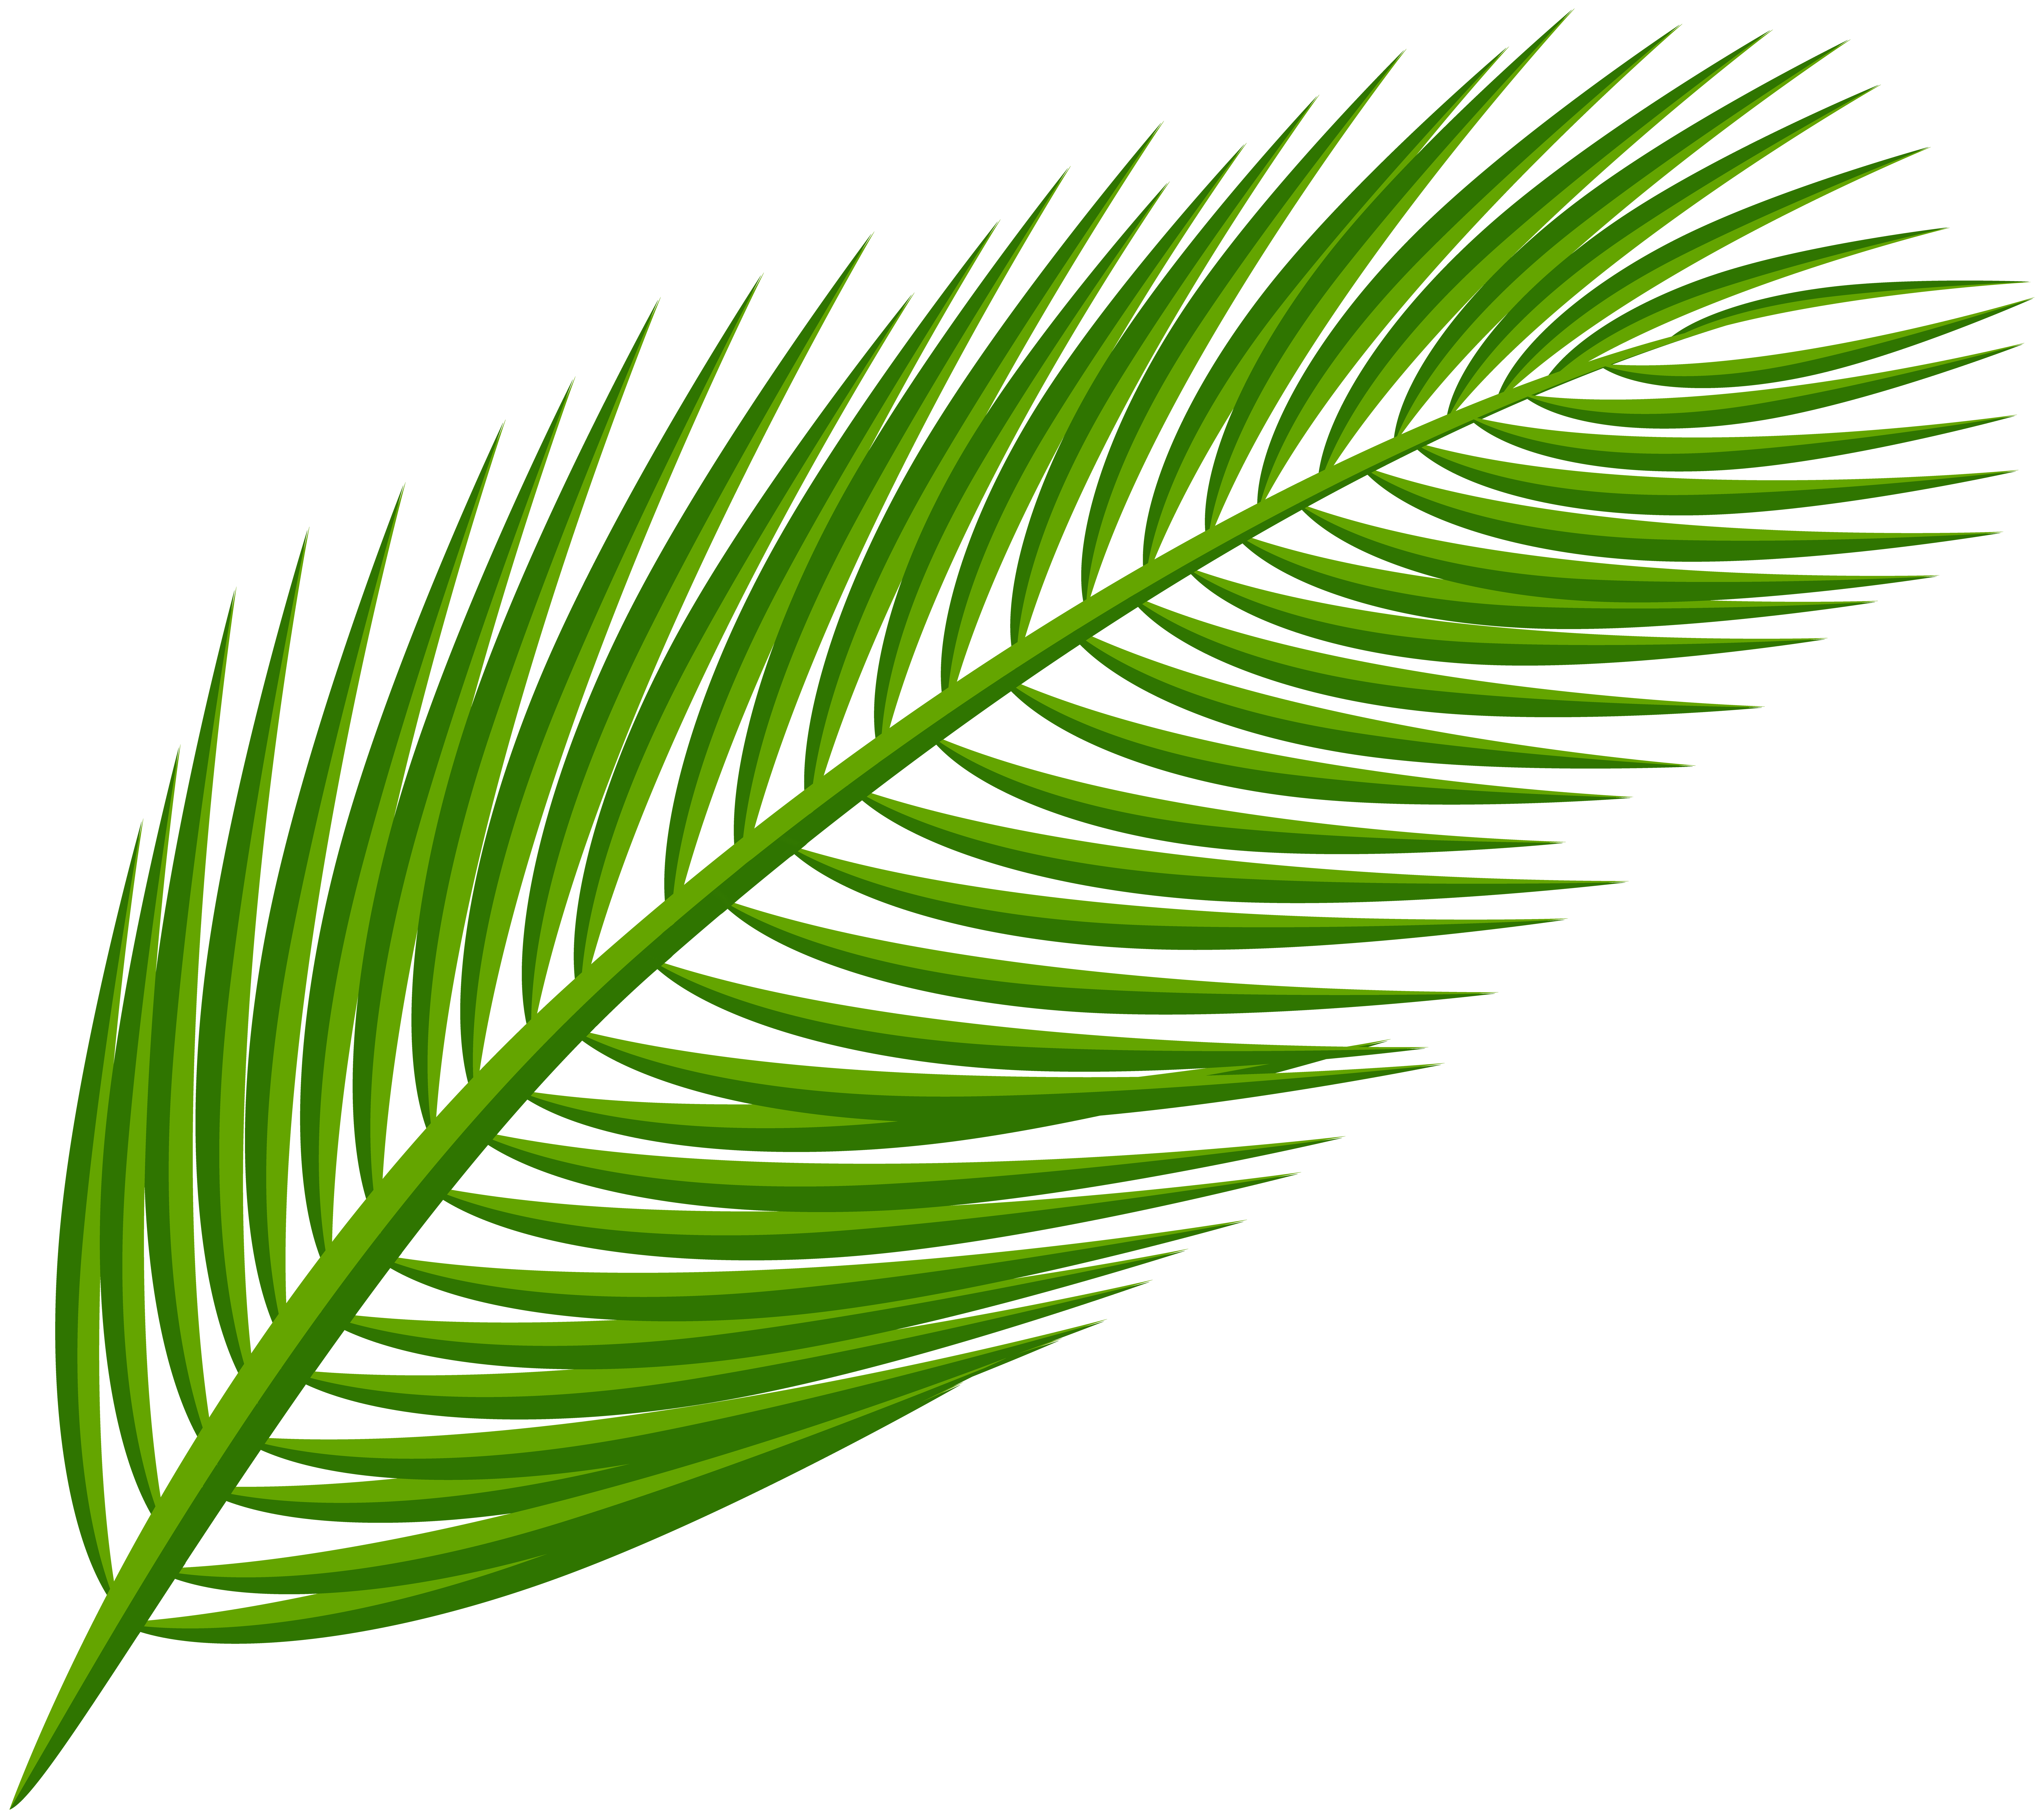 Palm leaves clip art png. Leaf transparent image gallery